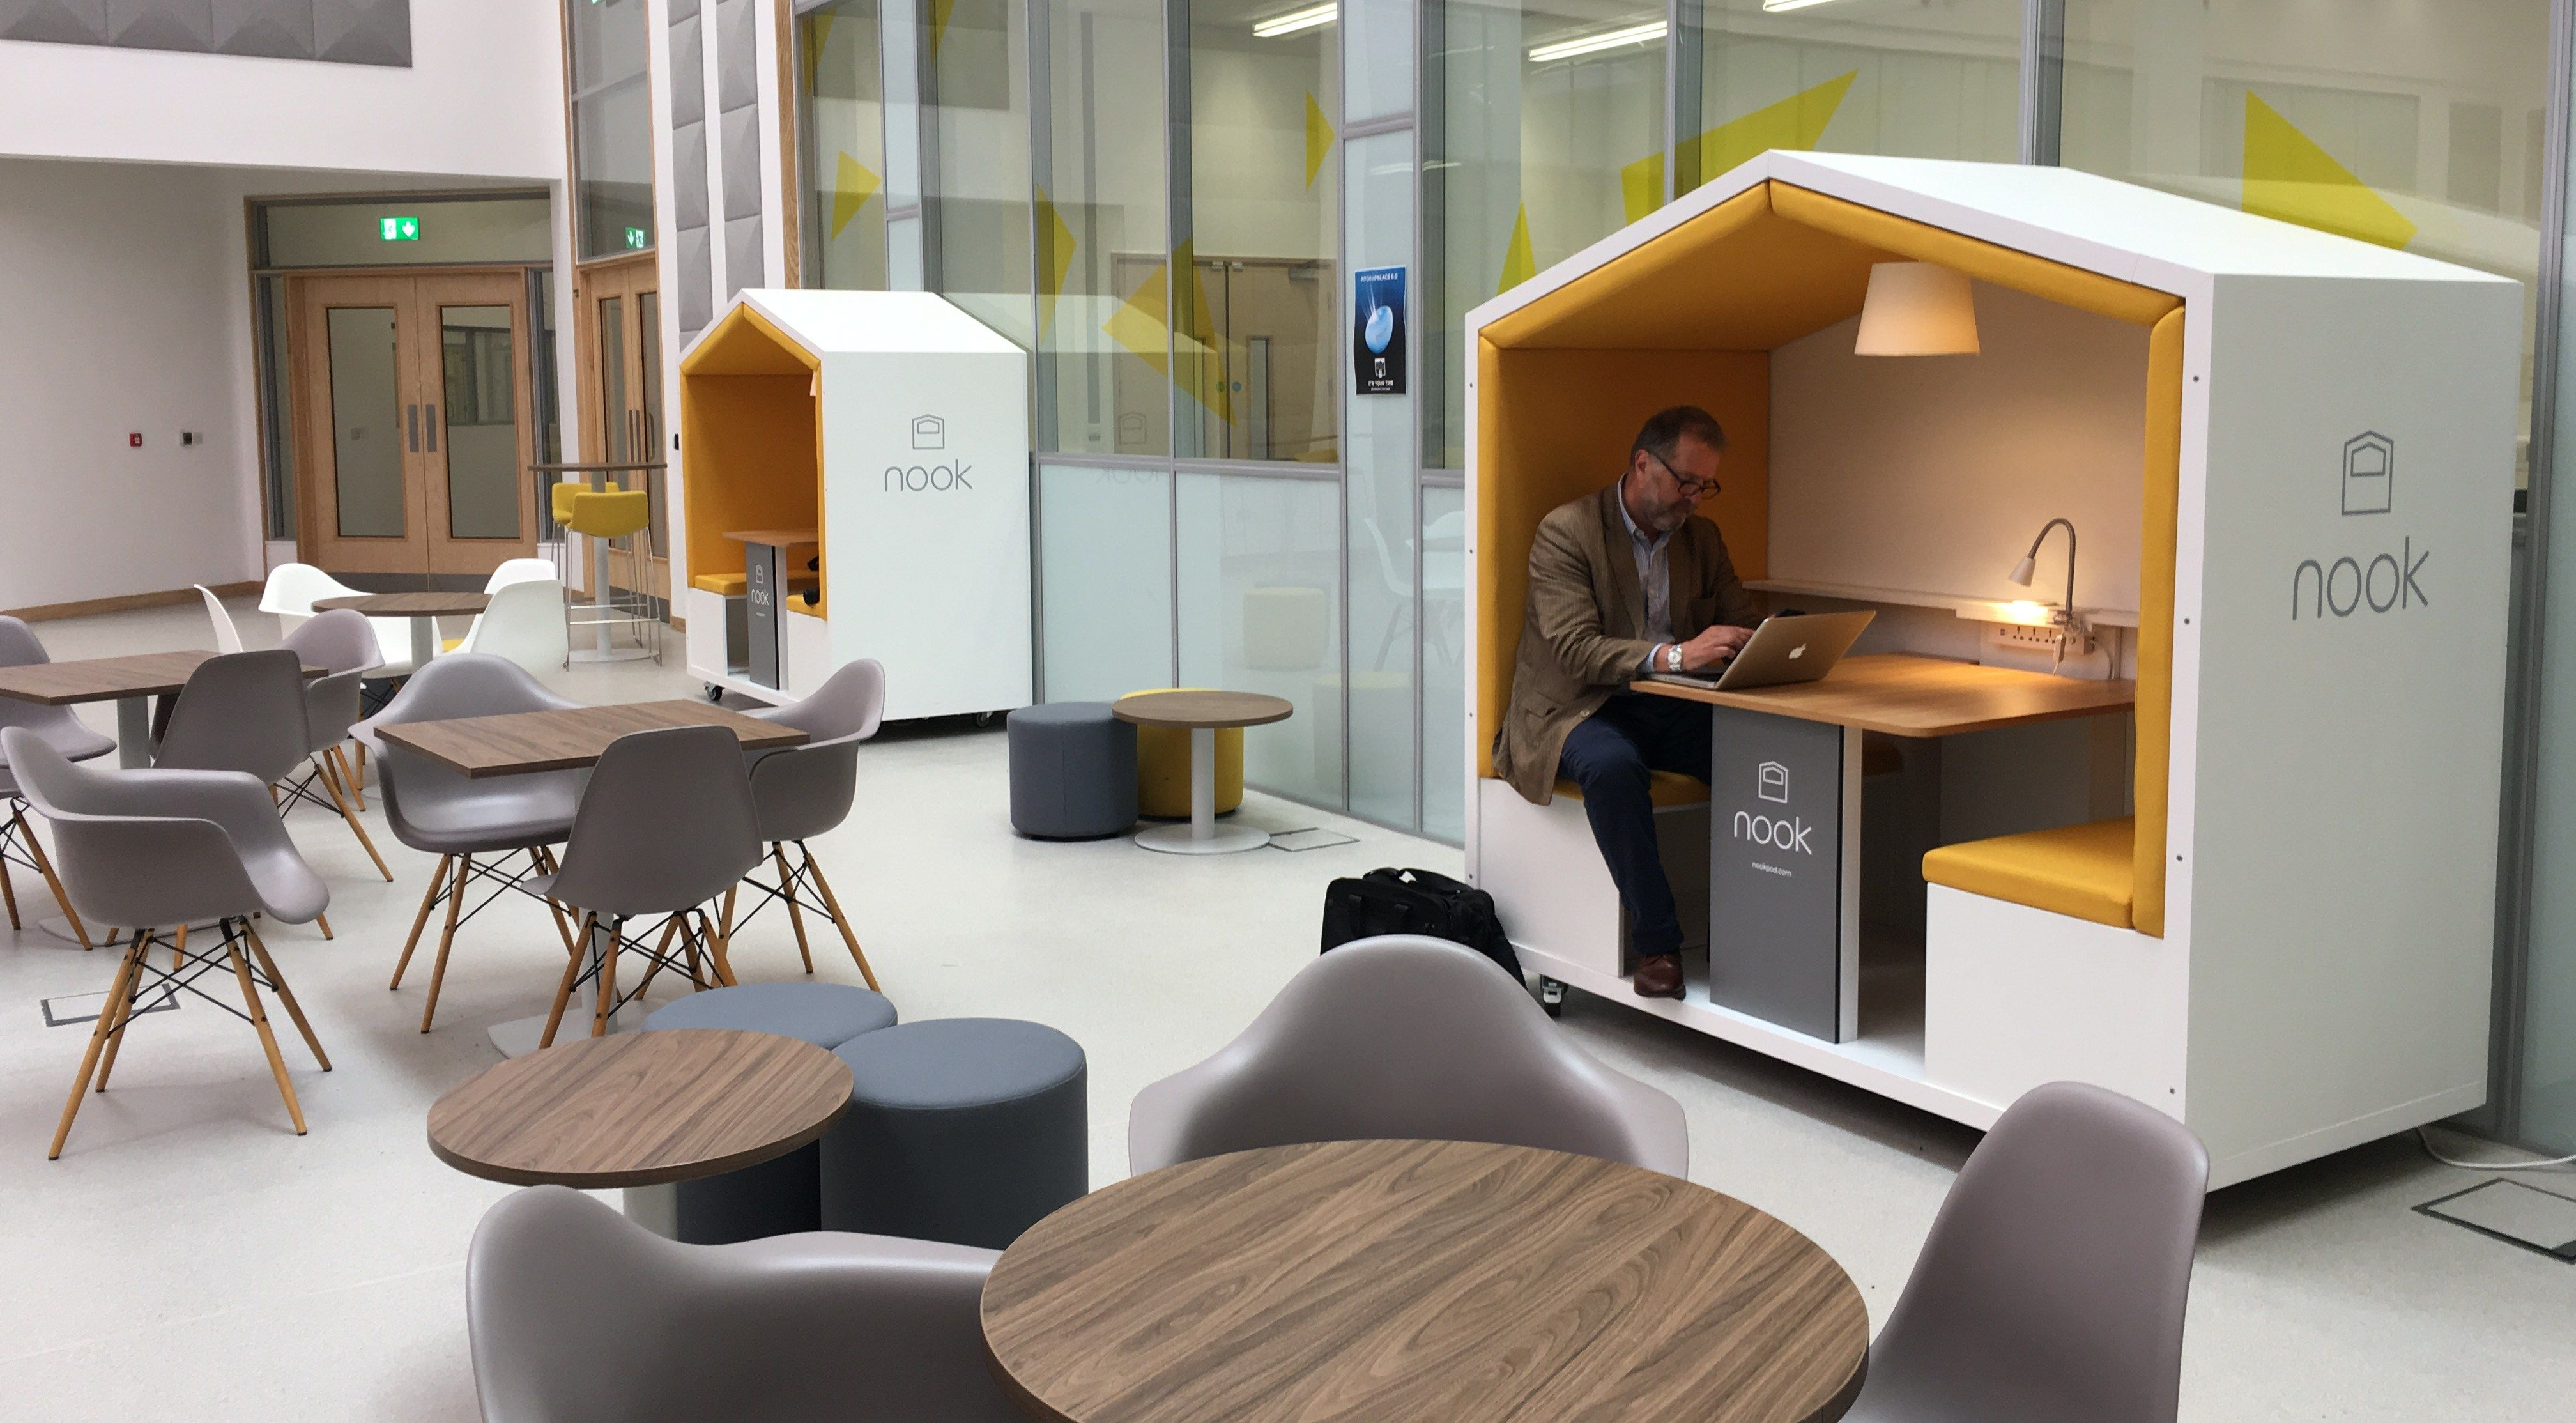 Mobile meeting & work pod for offices events coworking waiting